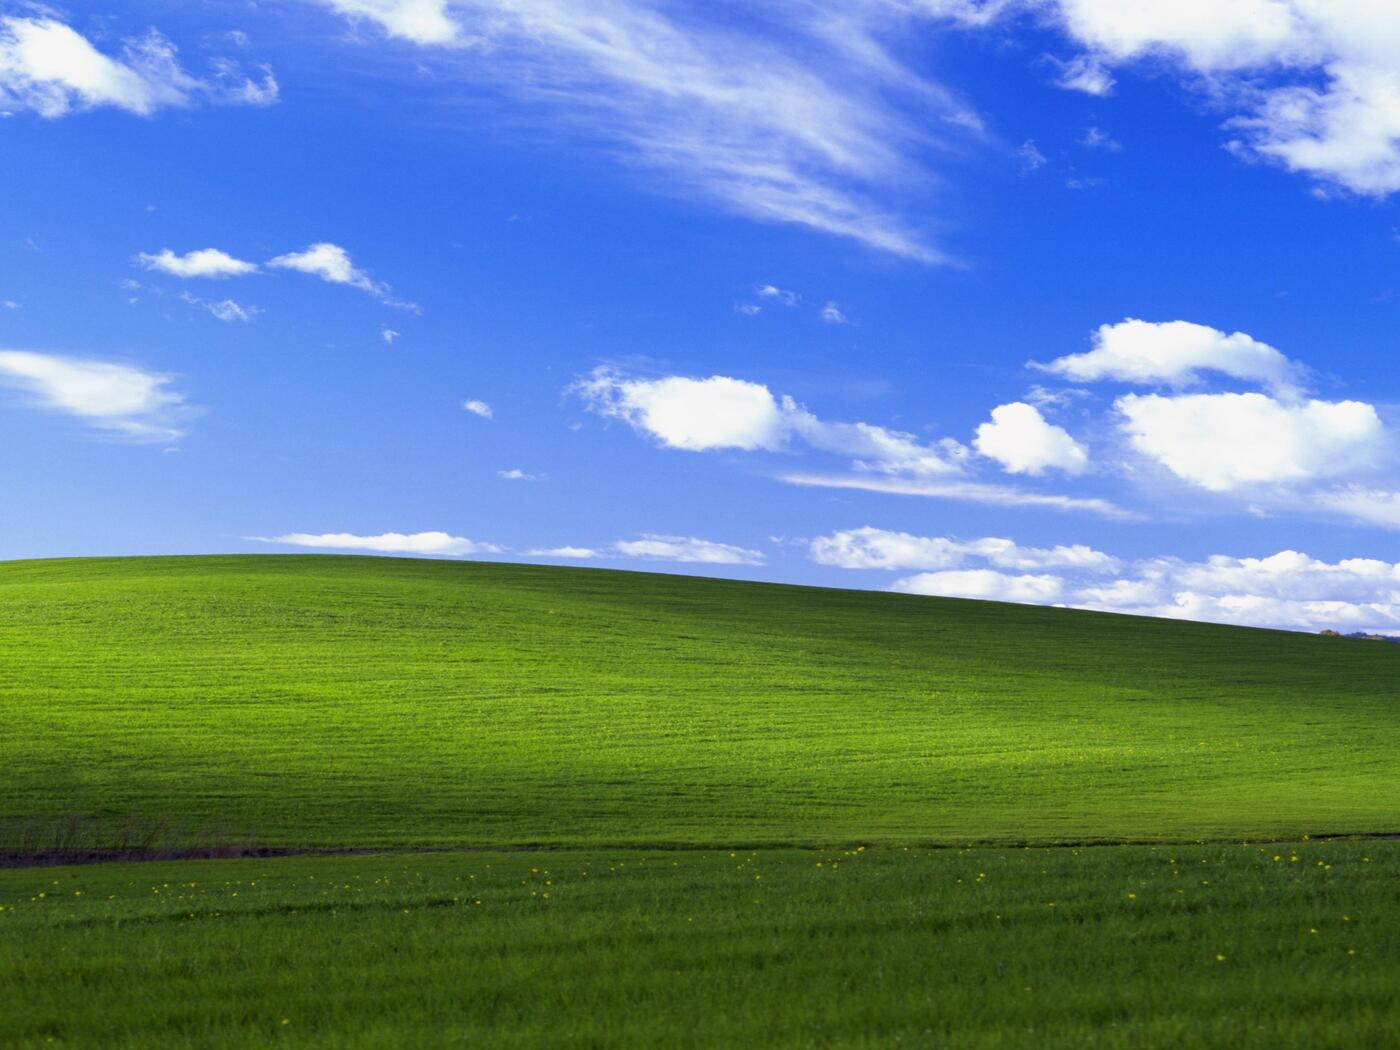 1400x1050 windows xp